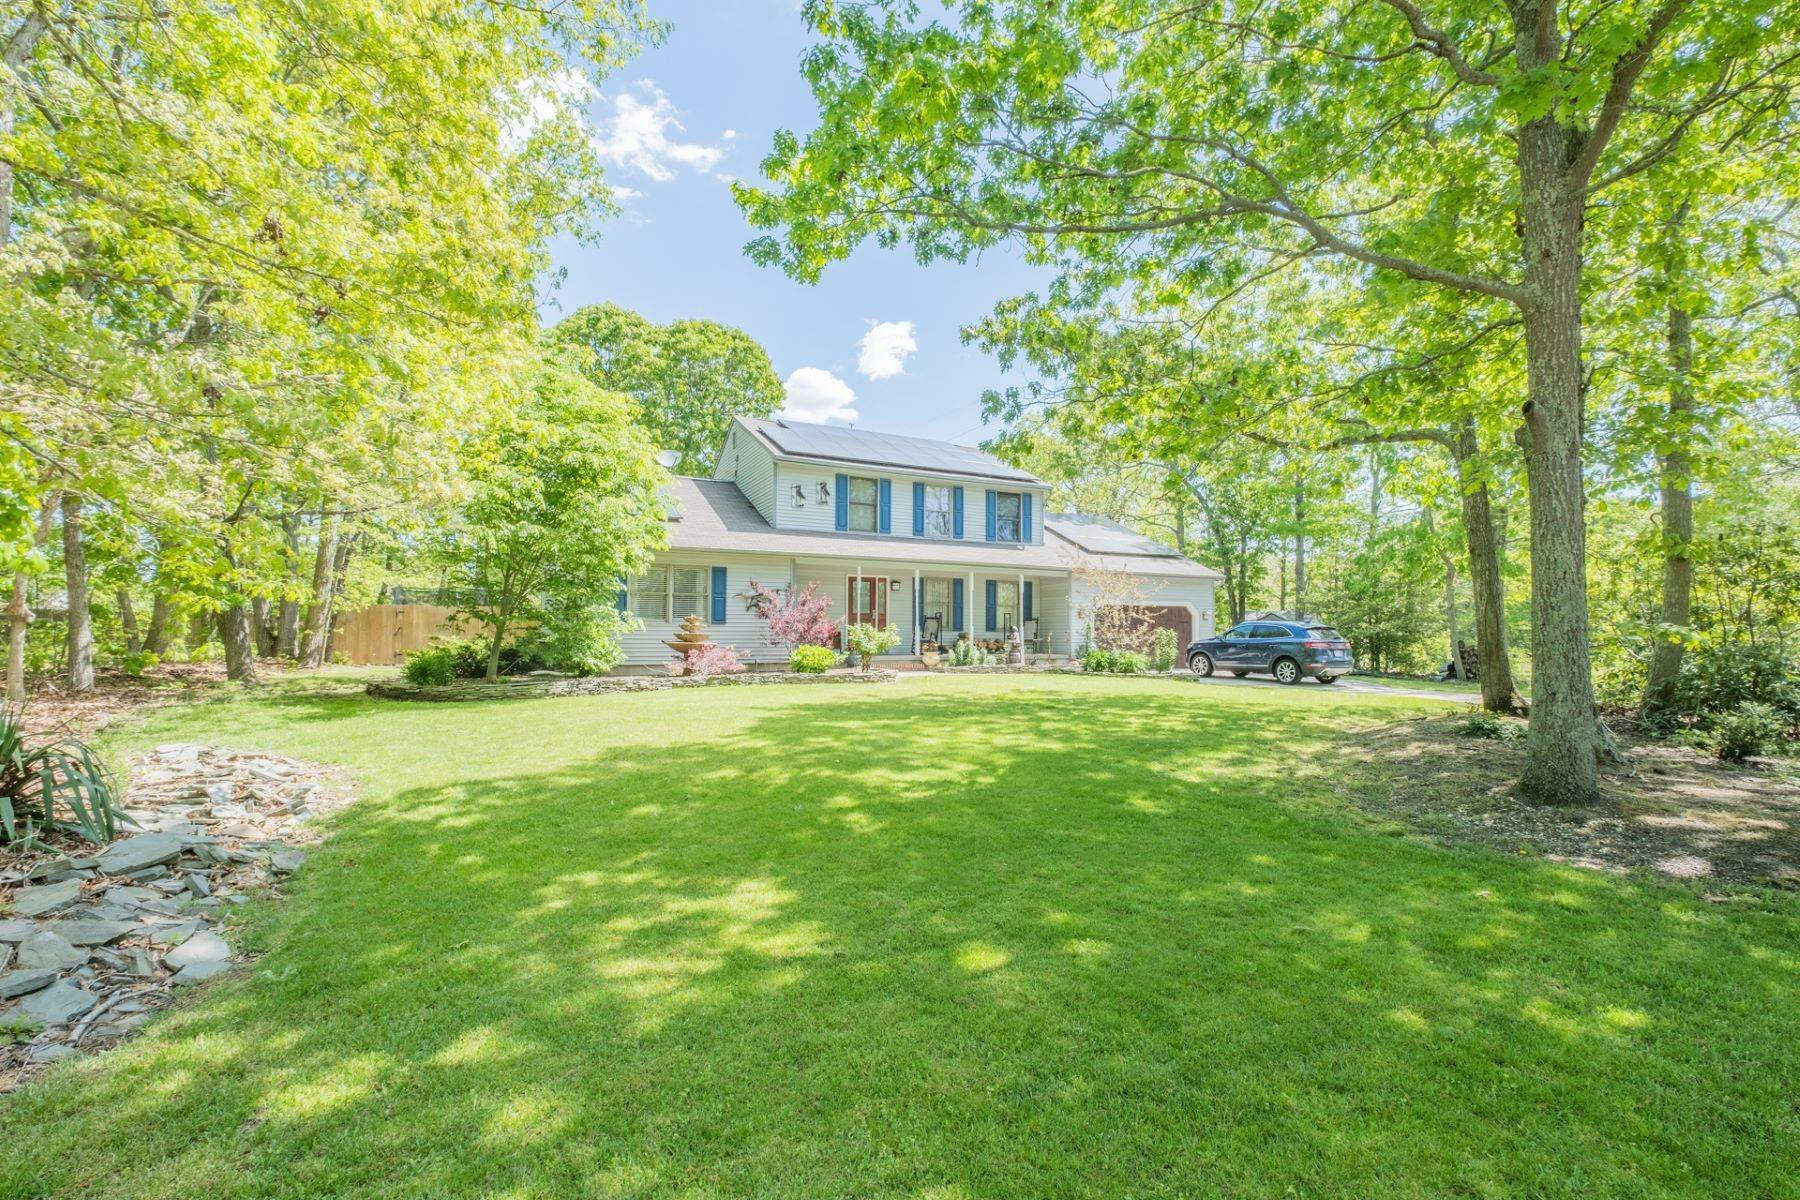 Single Family Homes for Sale at 5 Lauradell Drive South Seaville, New Jersey 08230 United States